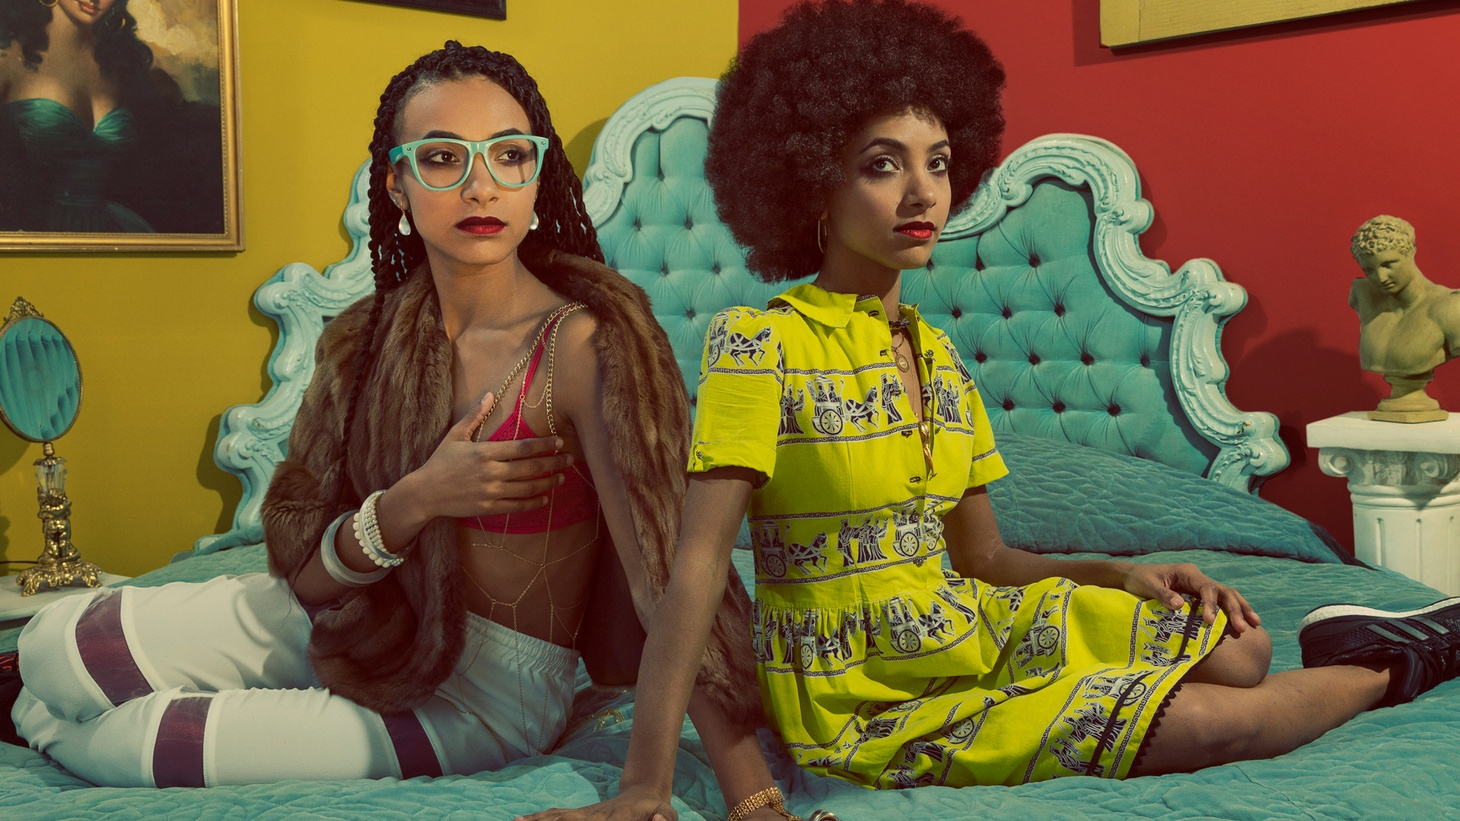 Four-time Grammy Winner Esperanza Spalding turns to her middle name as an alter ego and navigator for her new album, Emily's D+Evolution.